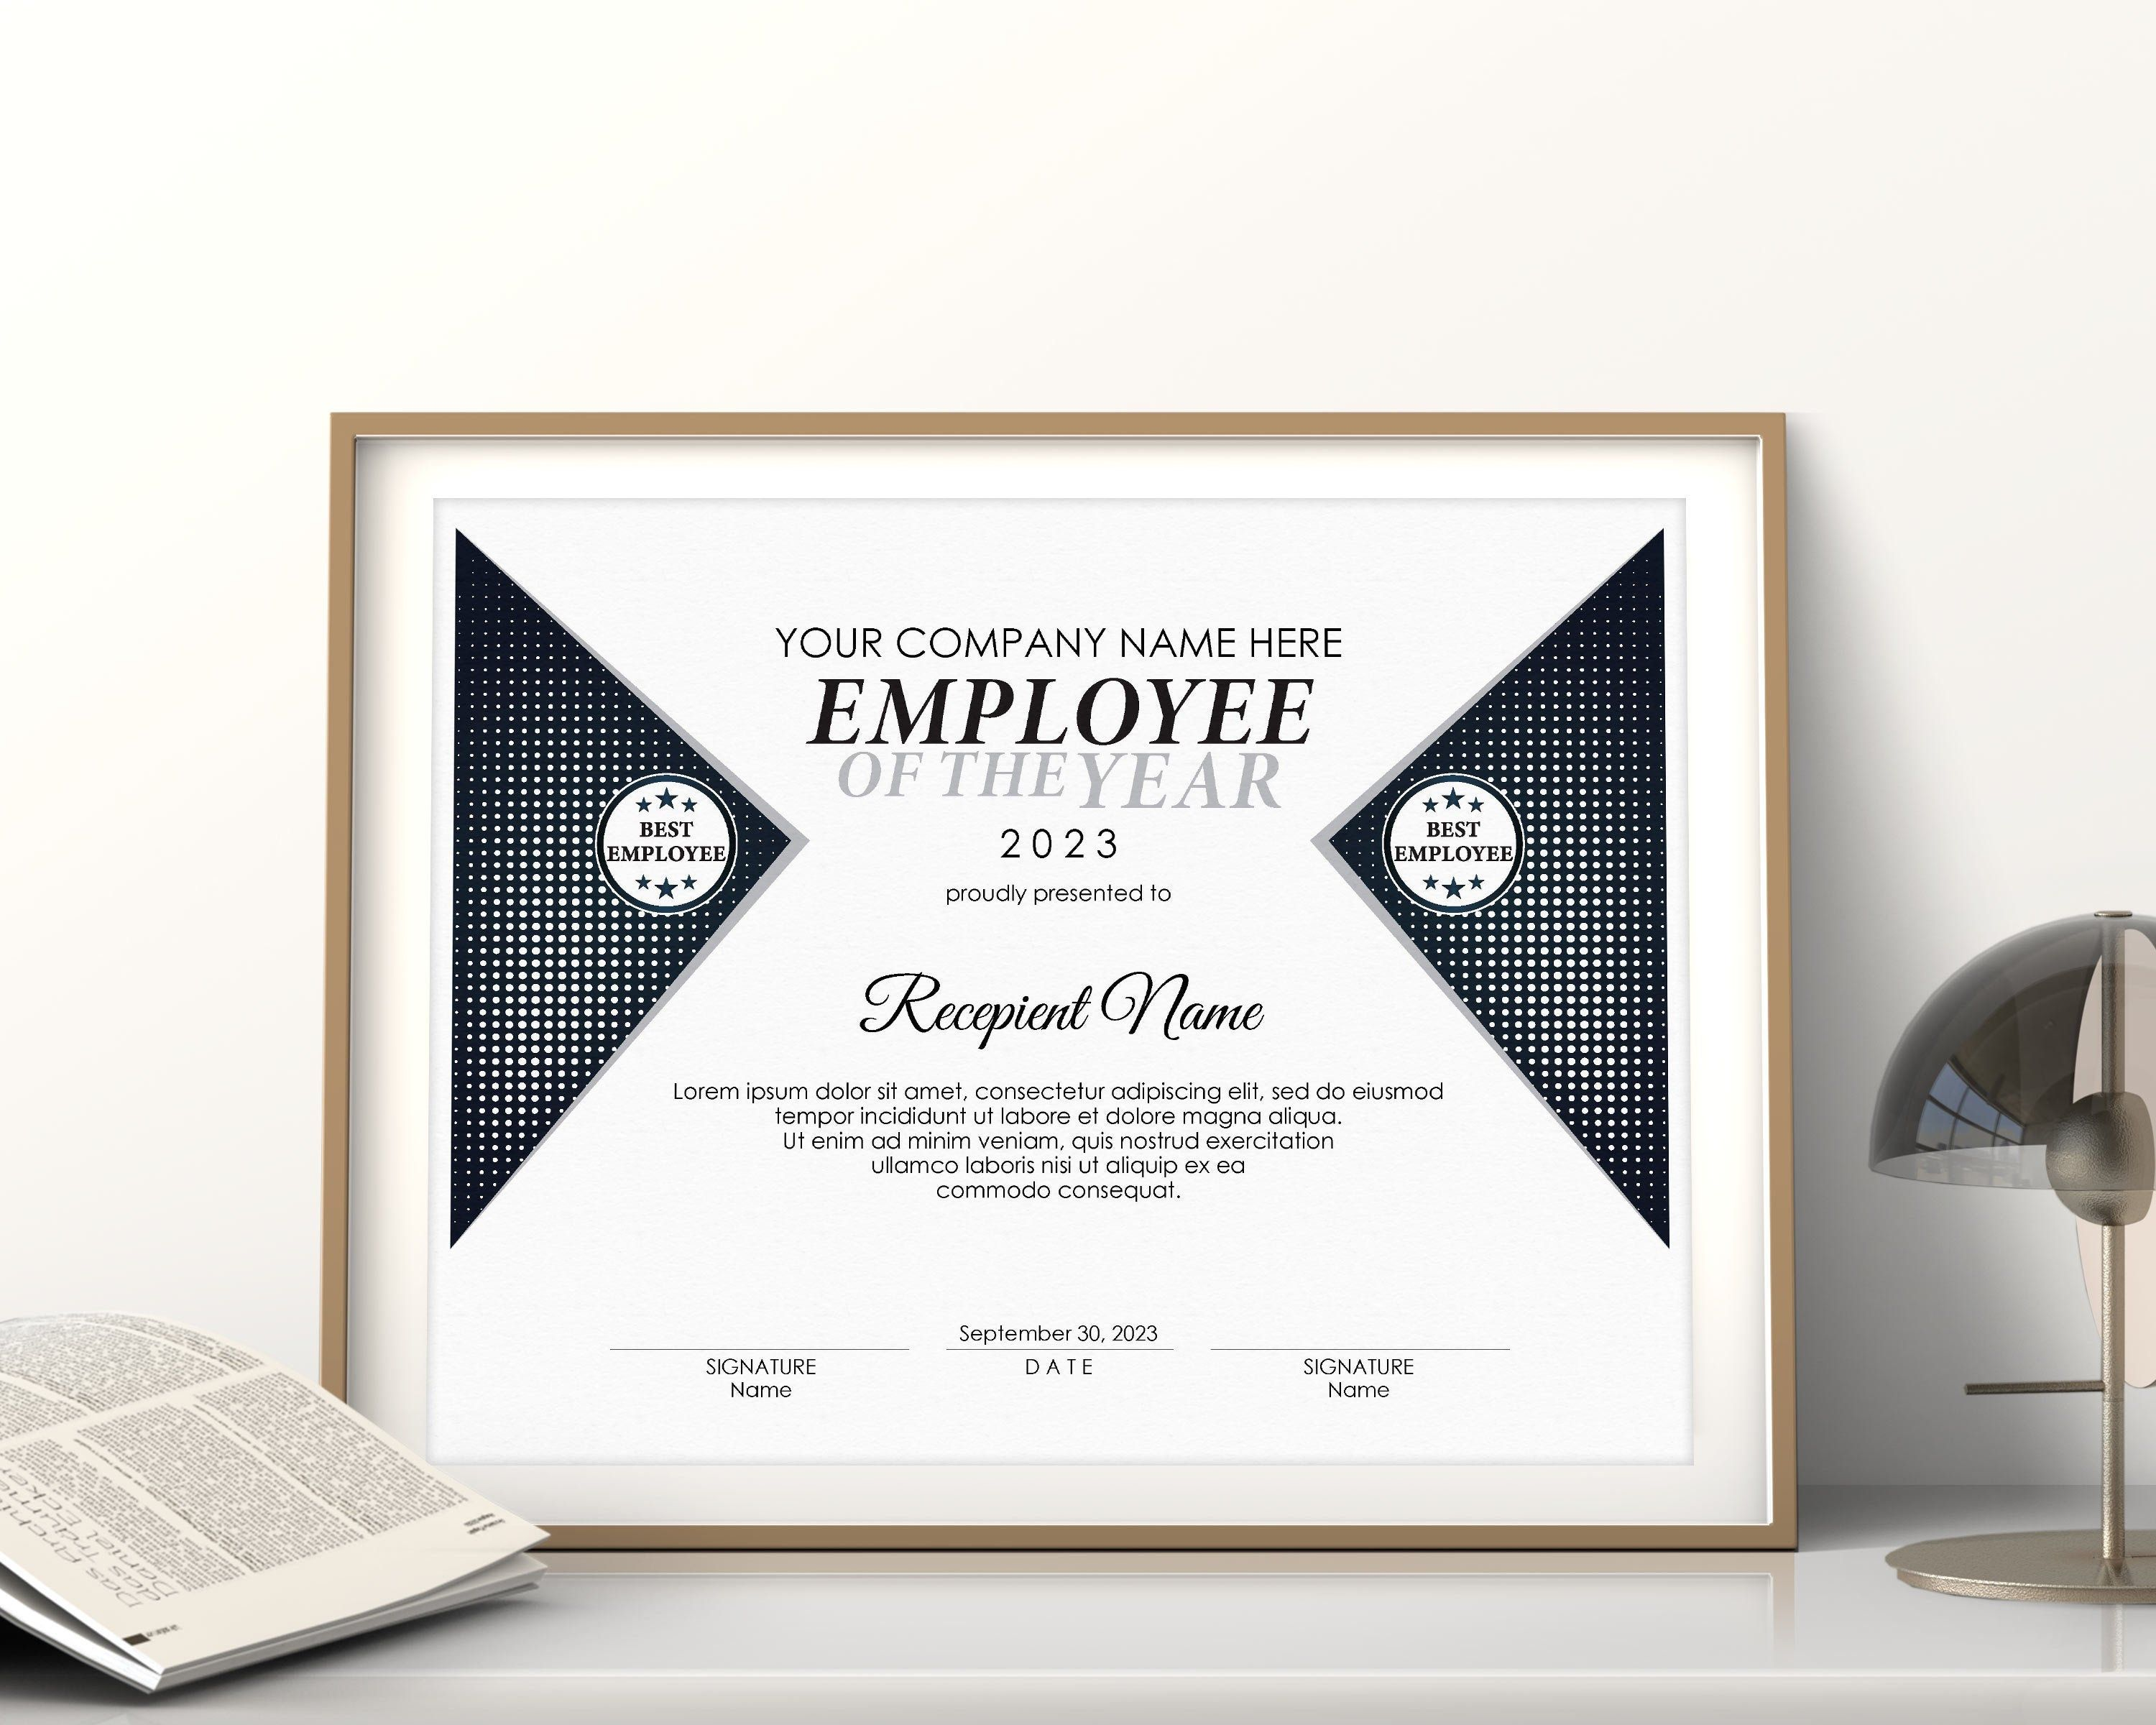 Editable Best Employee Of The Year Certificate Template Etsy Certificate Templates Editable Certificates Printable Certificates Employee of the year certificates